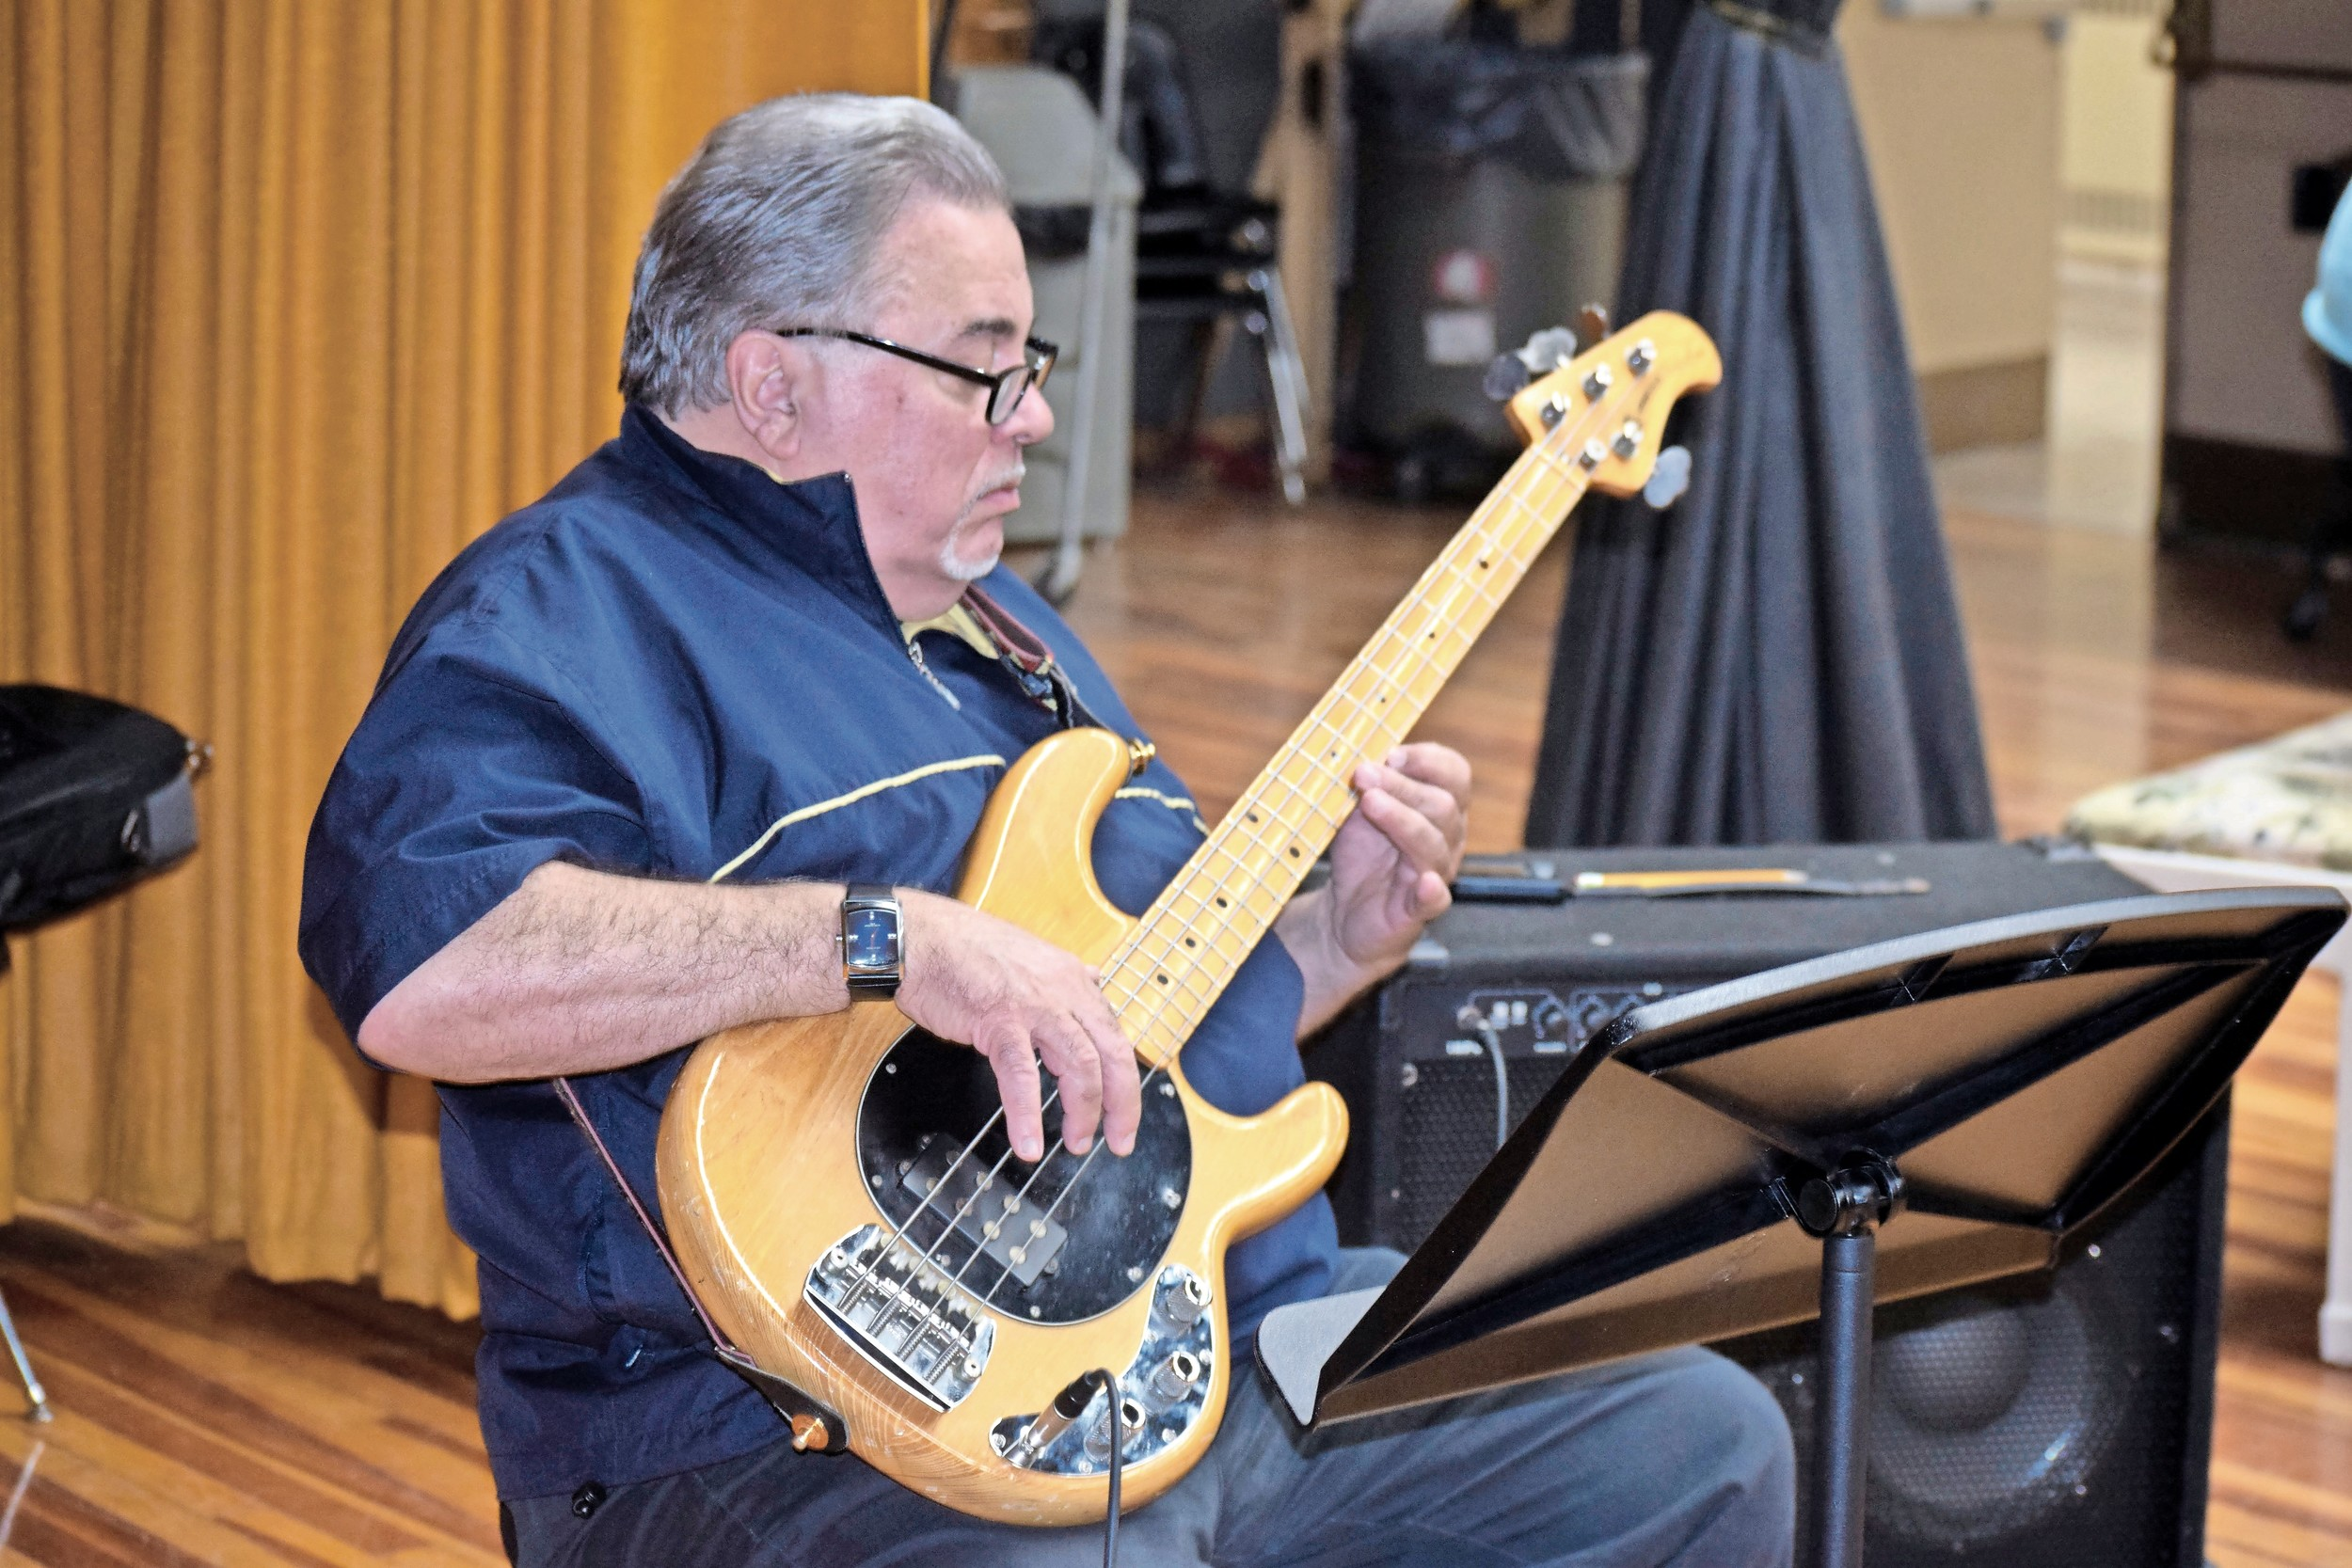 Cliff Heepe, a longtime member of the band, tuned his guitar for the spring concert.